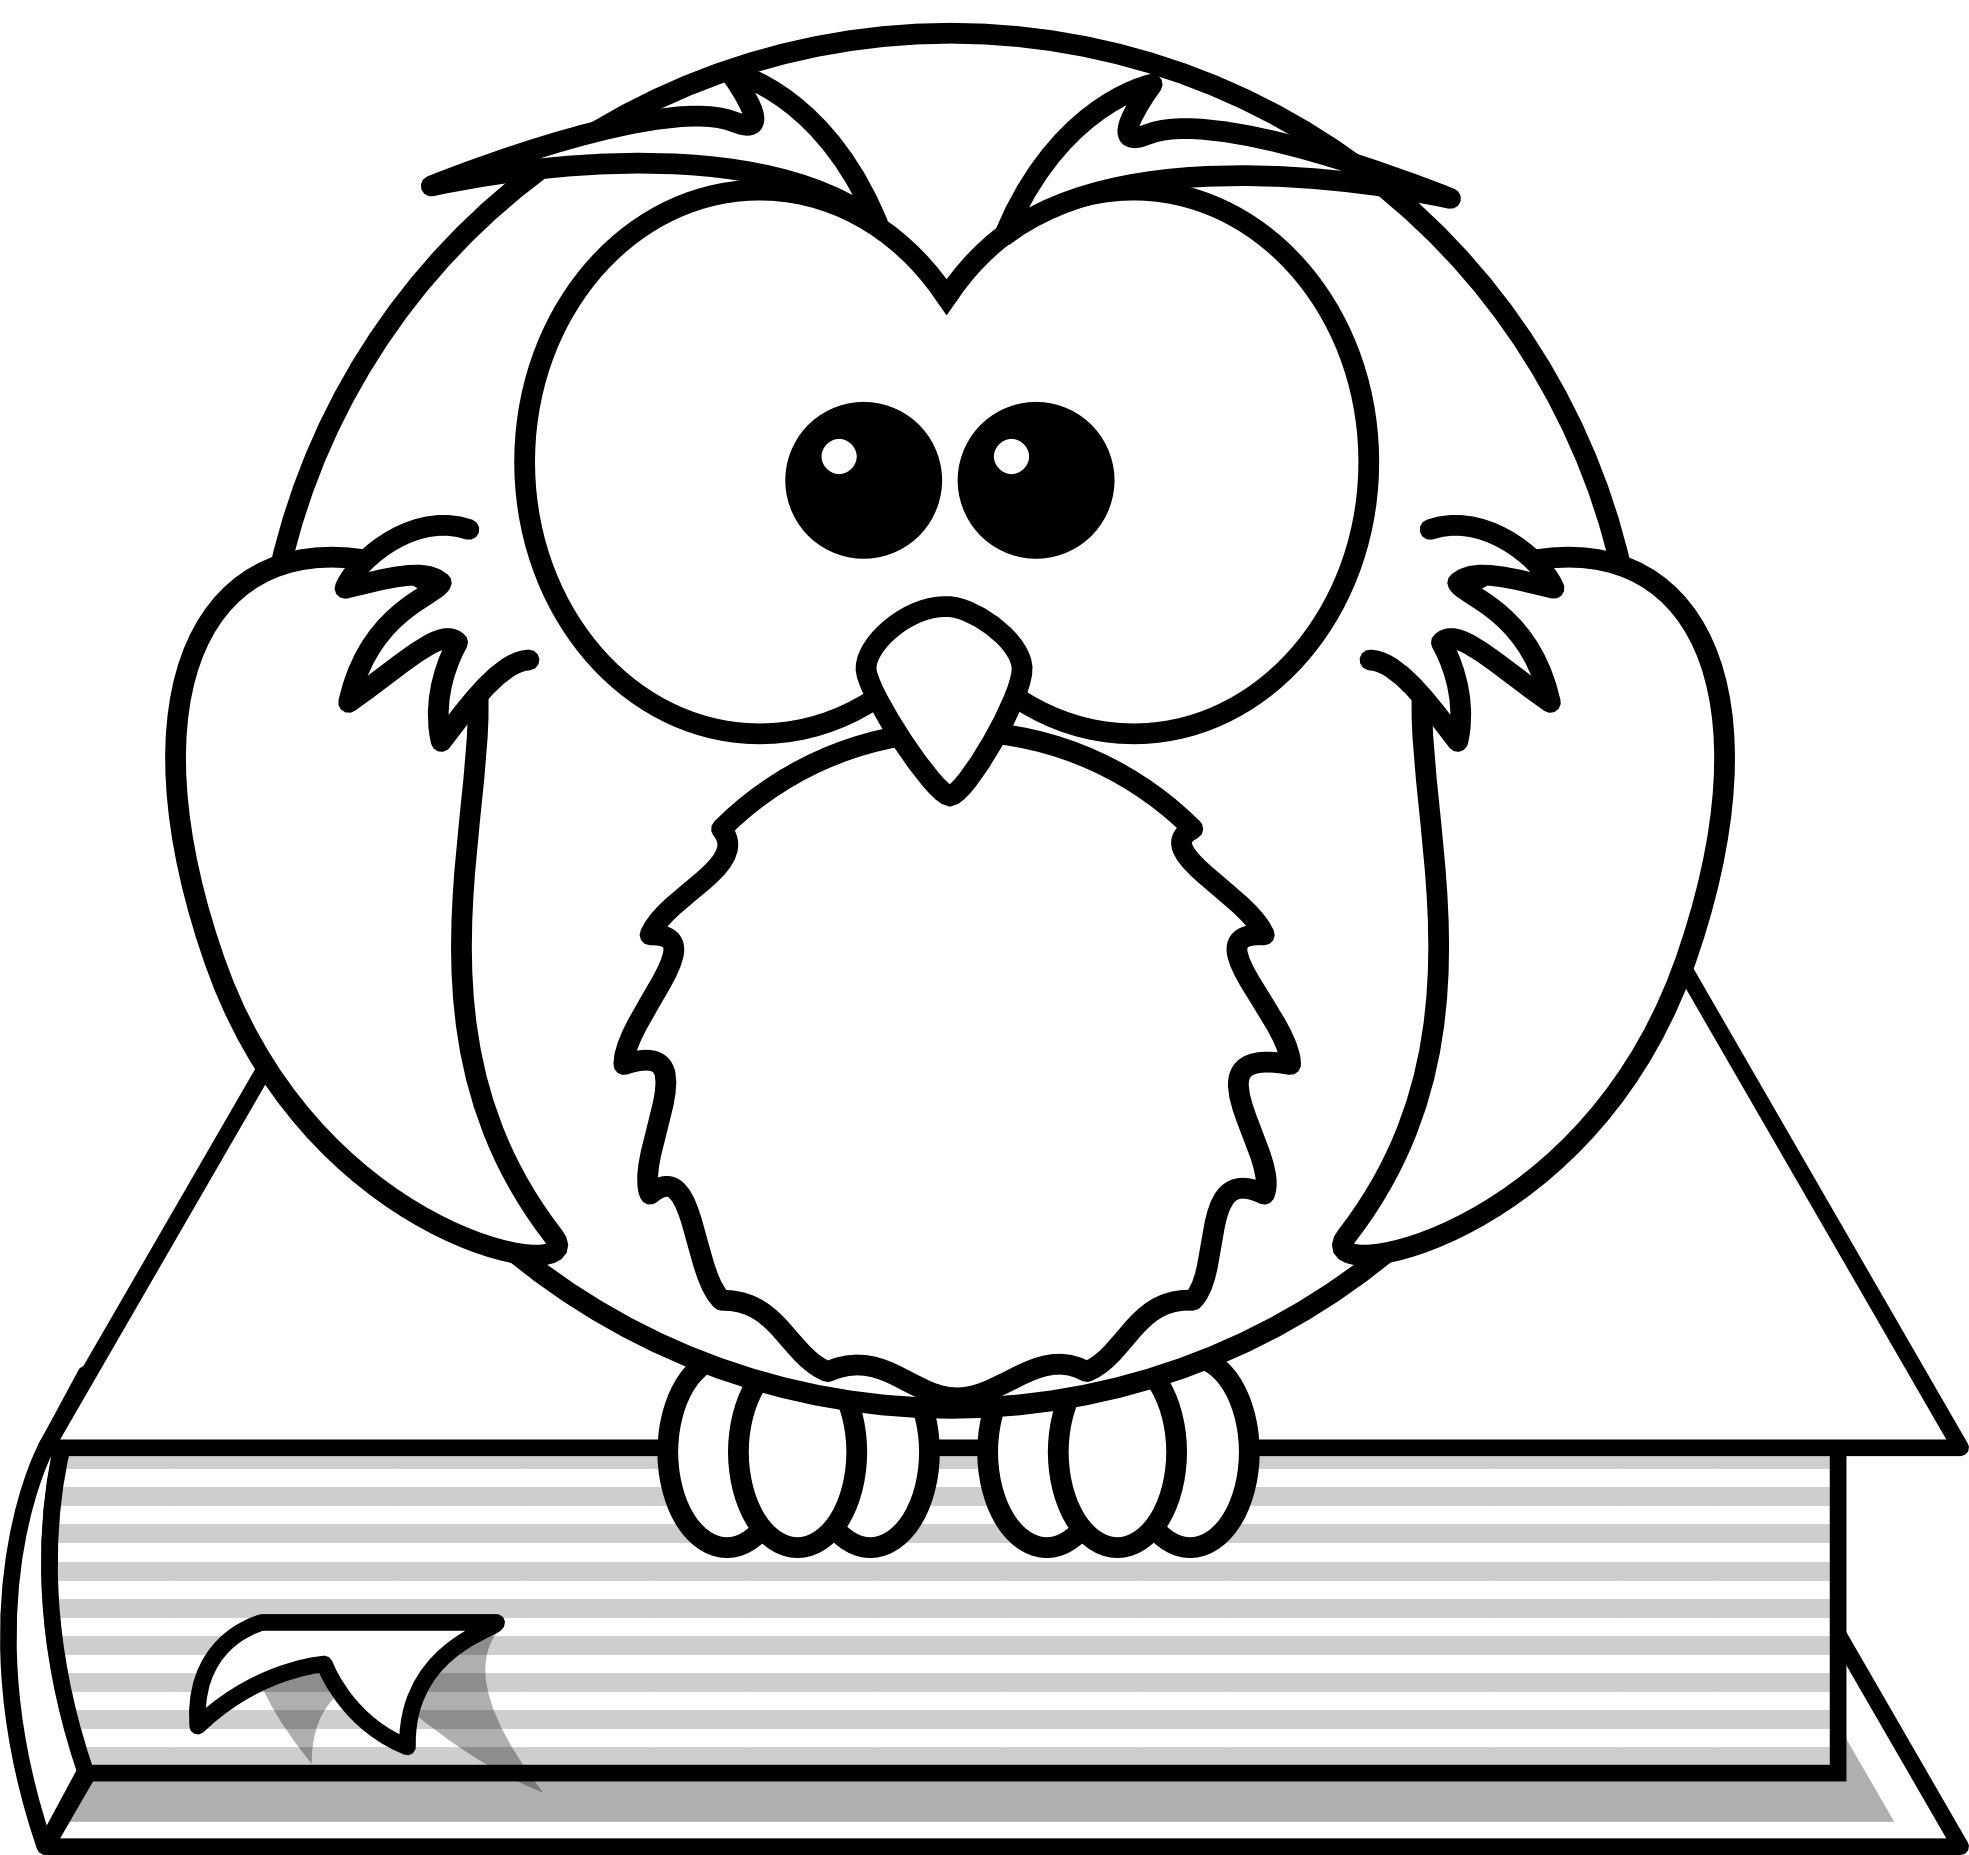 Clipart smart owl colored book svg library download Owl Clipart Black And White | Clipart Panda - Free Clipart Images svg library download